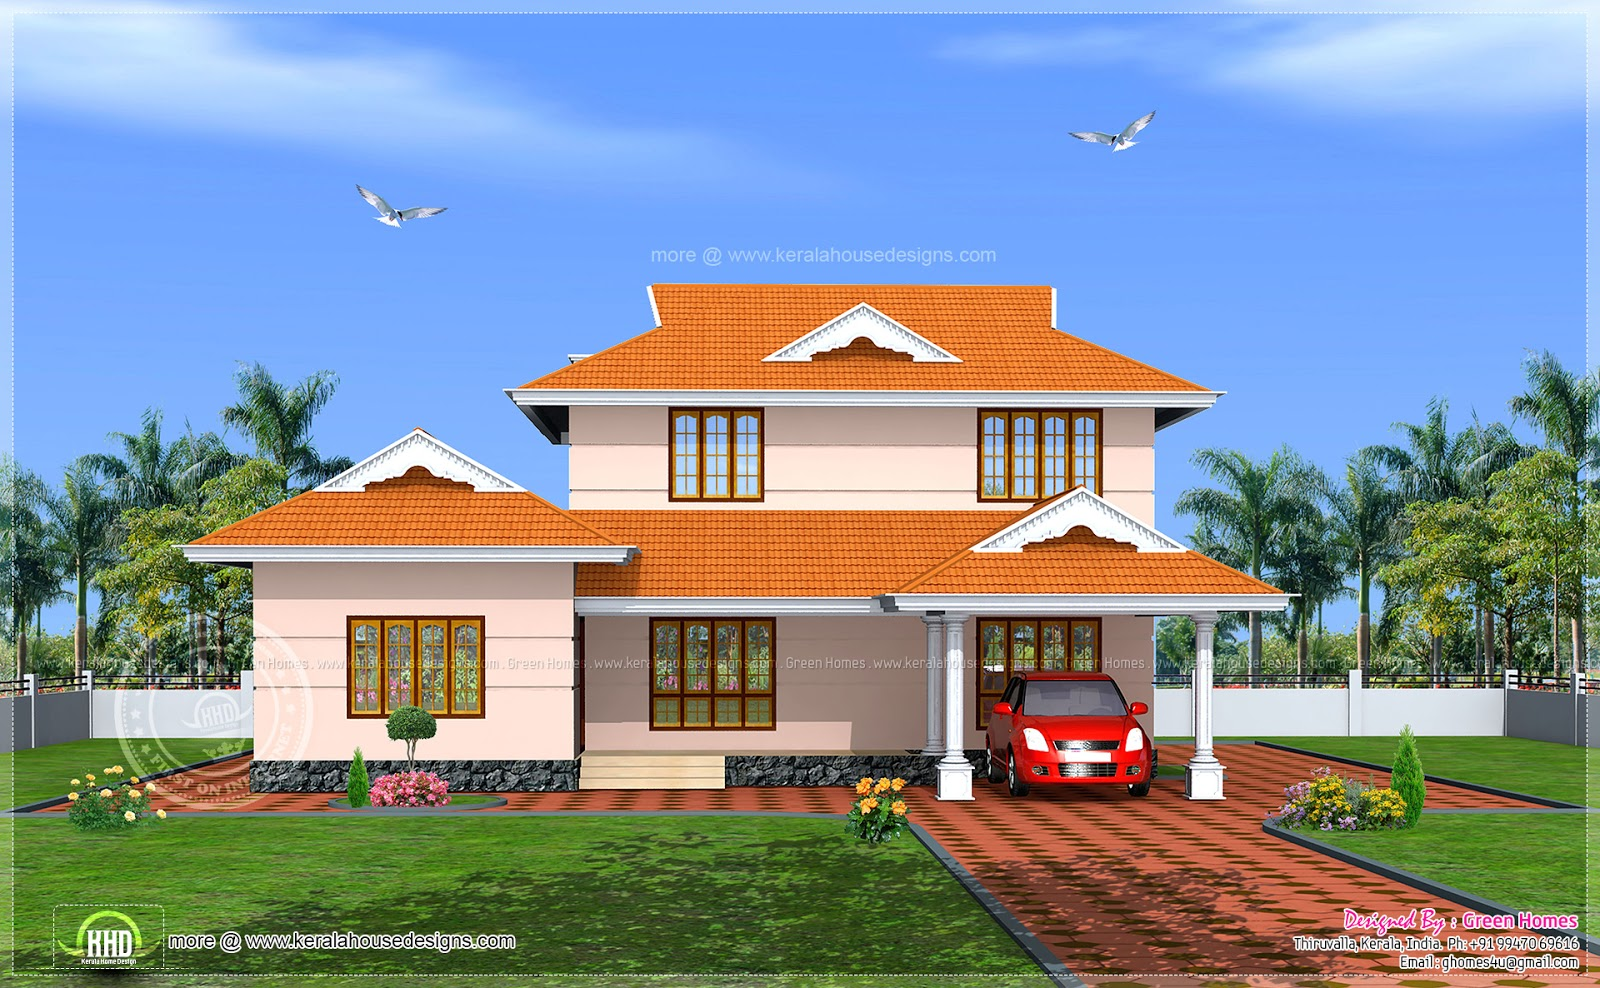 House plans and design house plans in kerala model with for Home designs in kerala